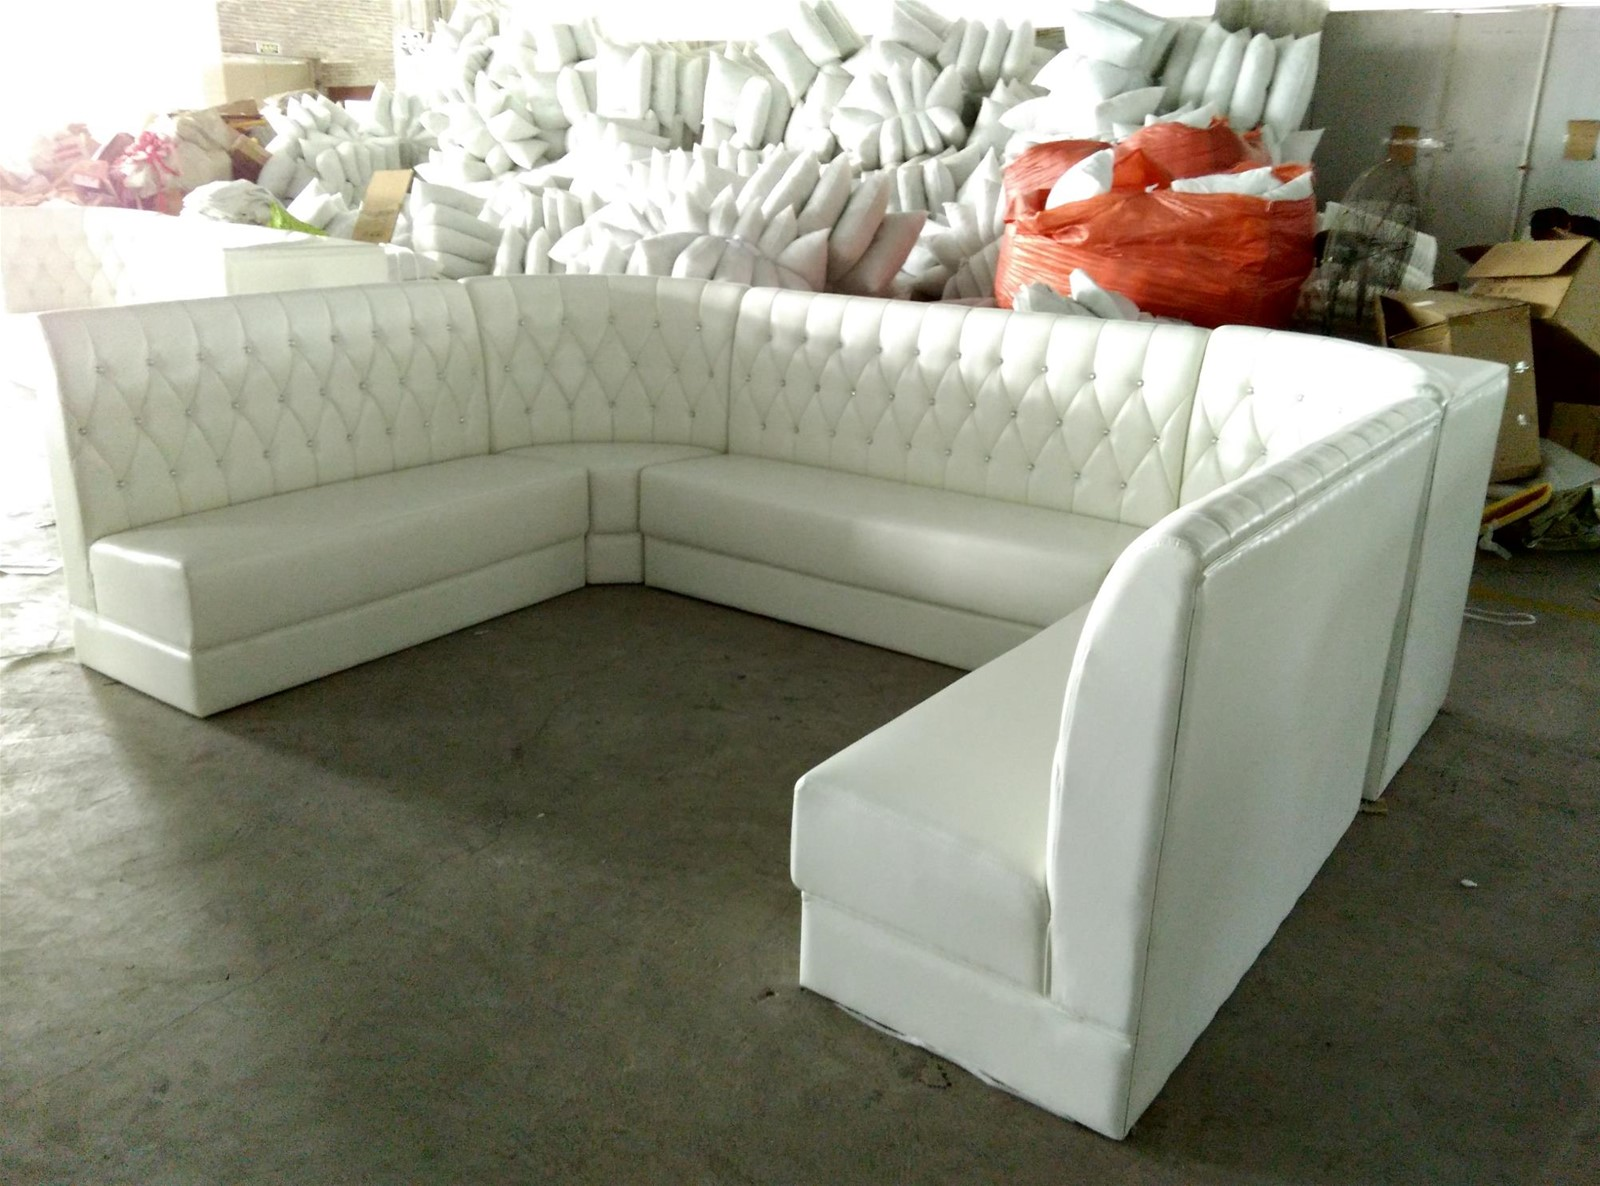 u shape customized restaurant booth seating in white vinyl leather